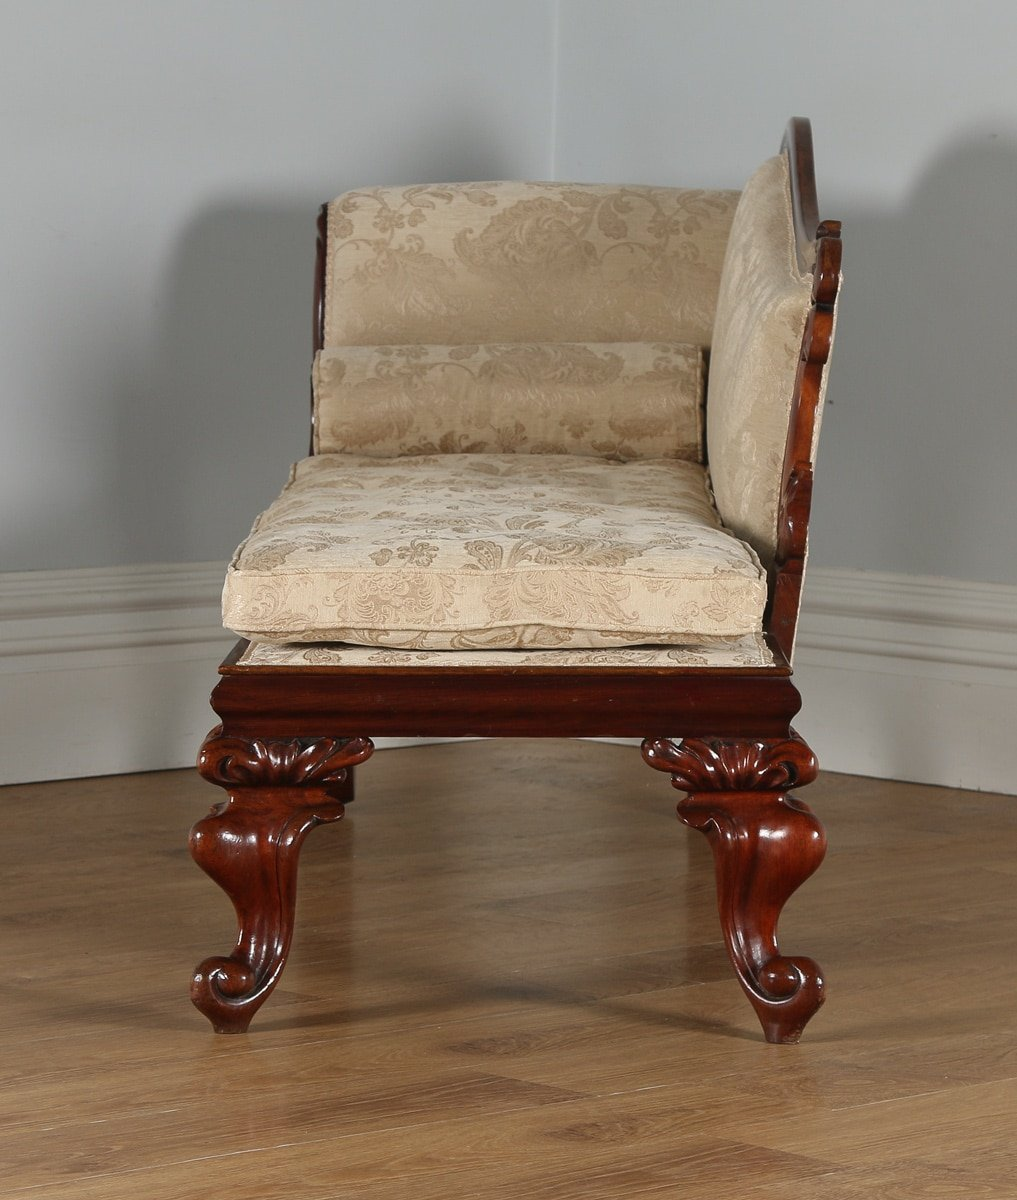 Antique english william iv mahogany chaise longue circa for Chaise longue in english